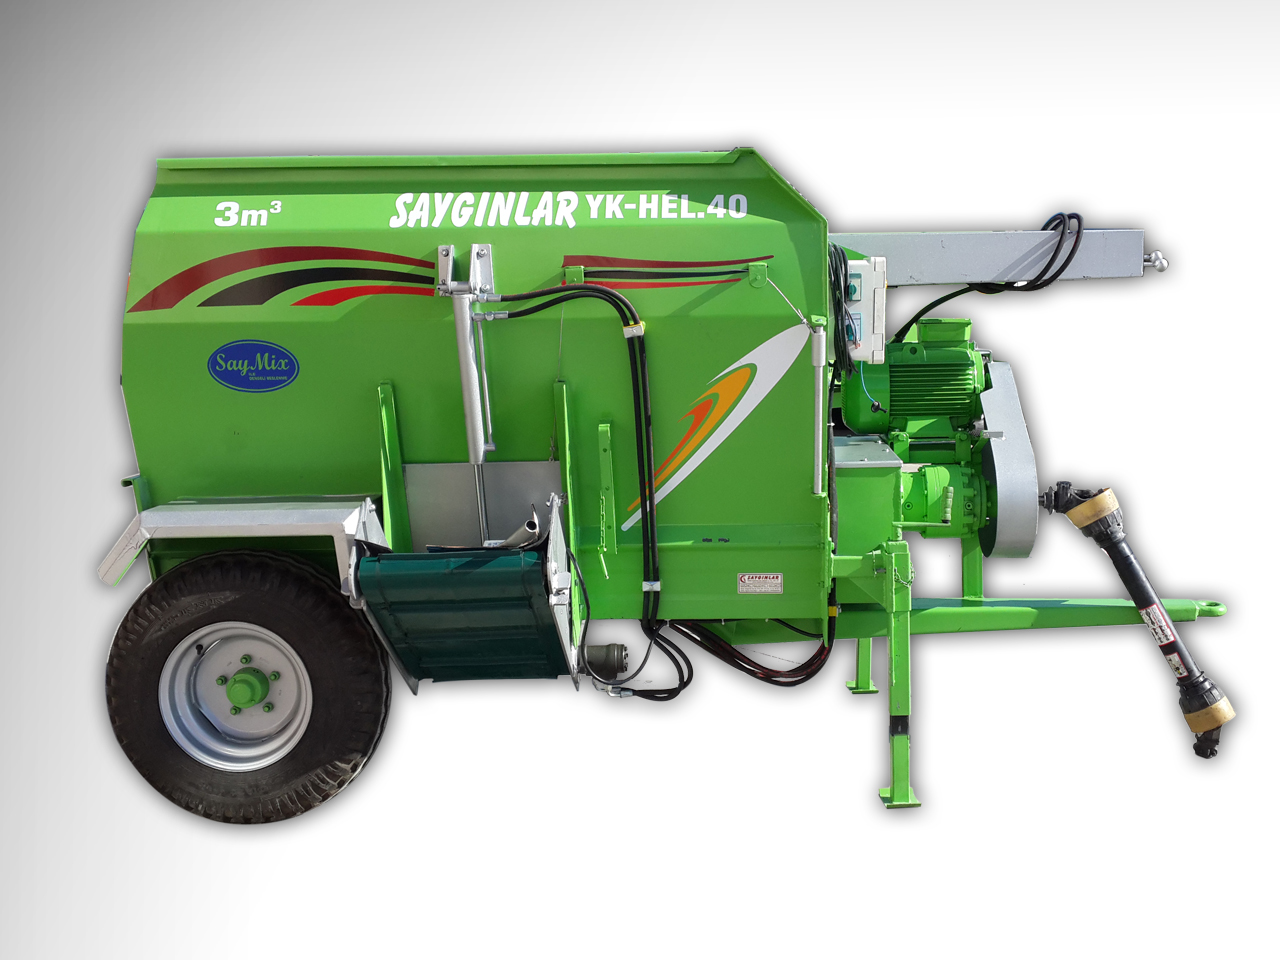 Horizantal Feed Mixer 3m3 Models of Electric and Tractor Pto Powered